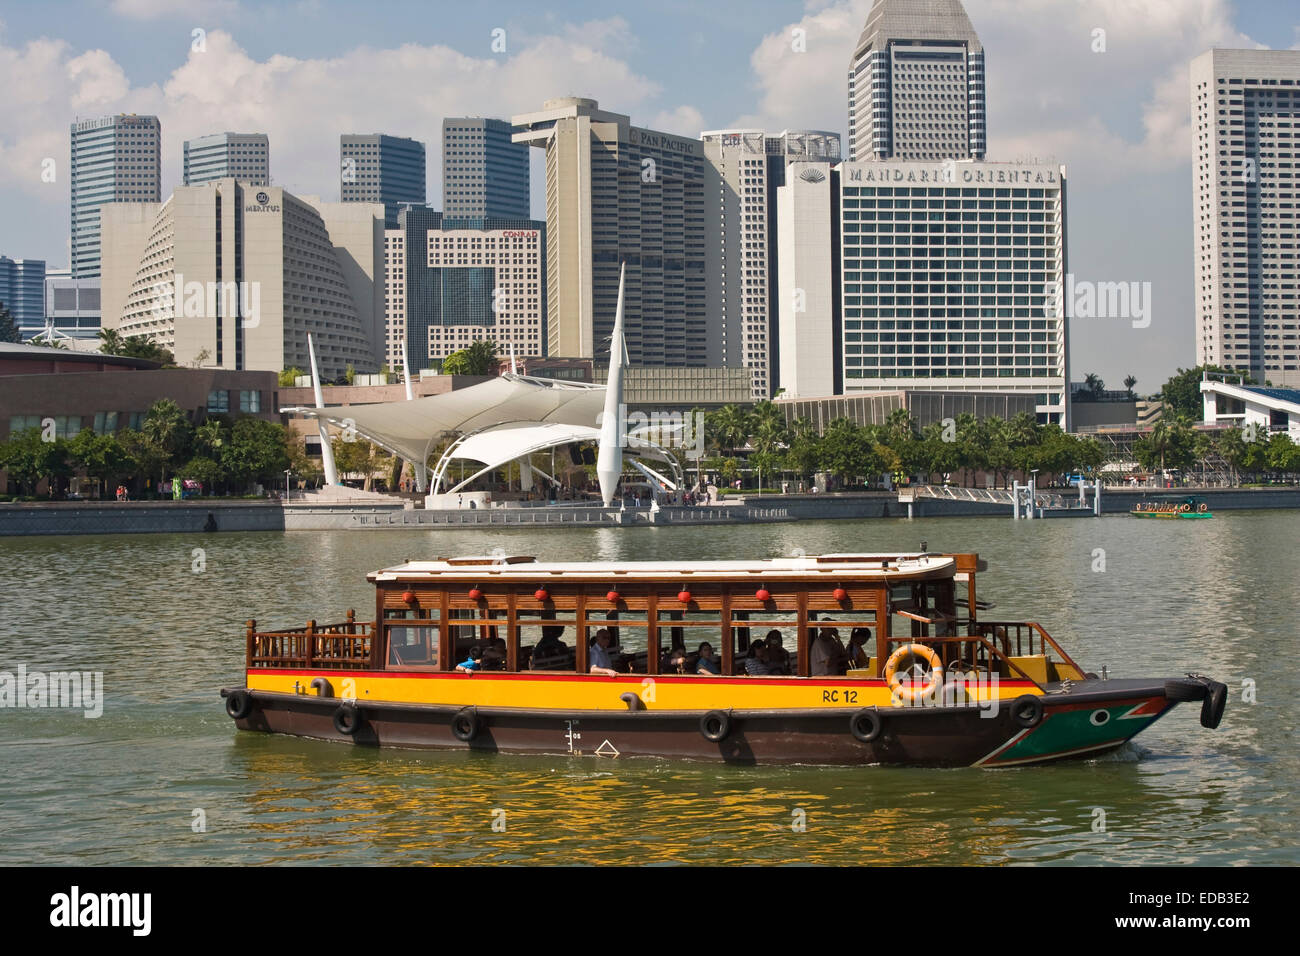 sightseeing boat on the Singapore River, the skyline of Singapore, Marinabay, Esplanade drive, - Stock Image